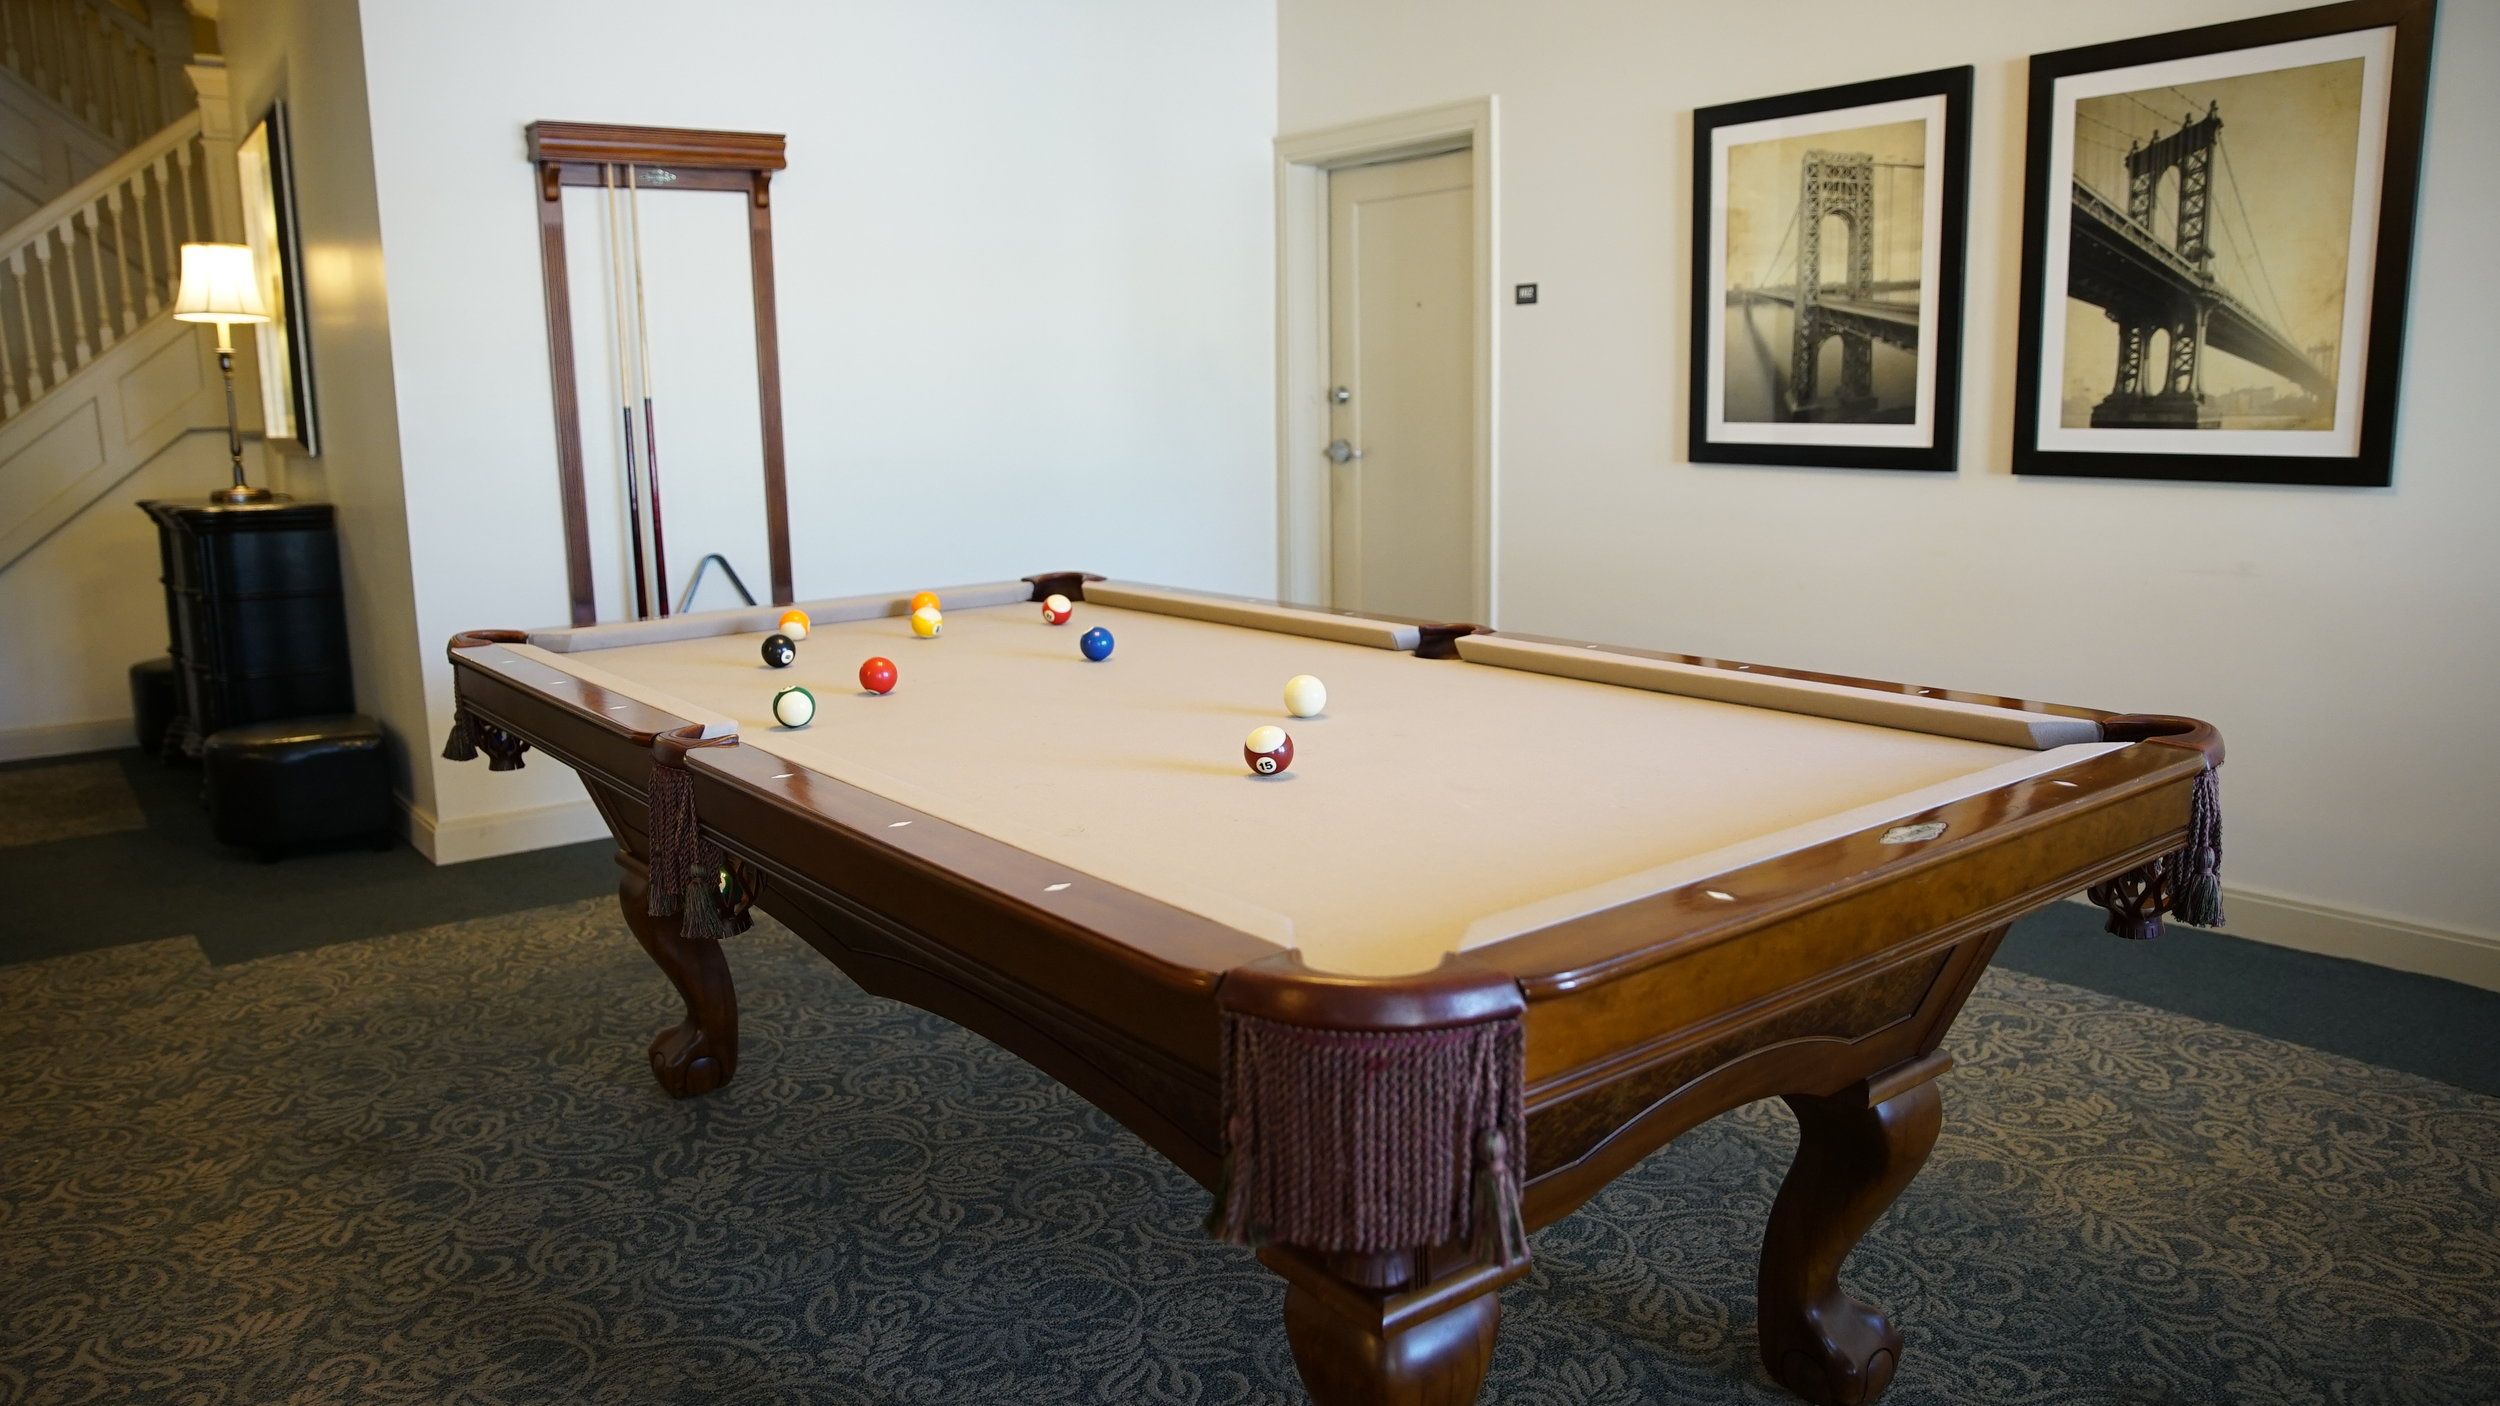 chatham senior apartments pool table